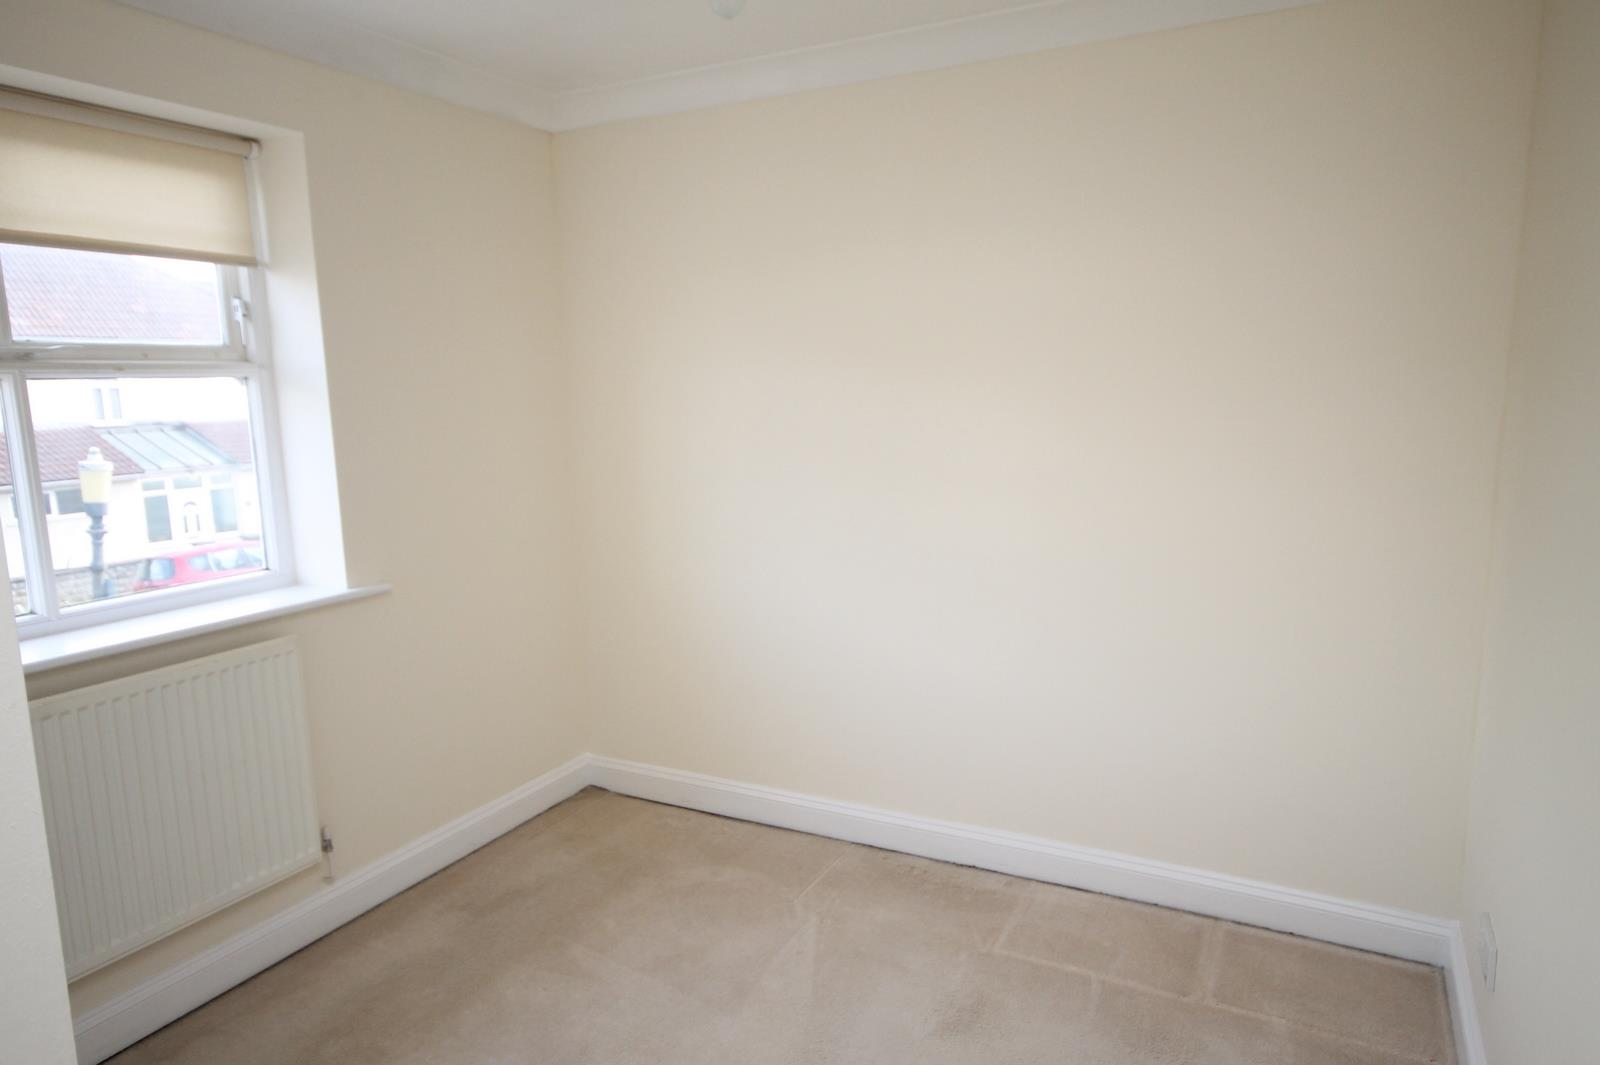 4 bed house to rent in Reedley Road, Bristol  - Property Image 8